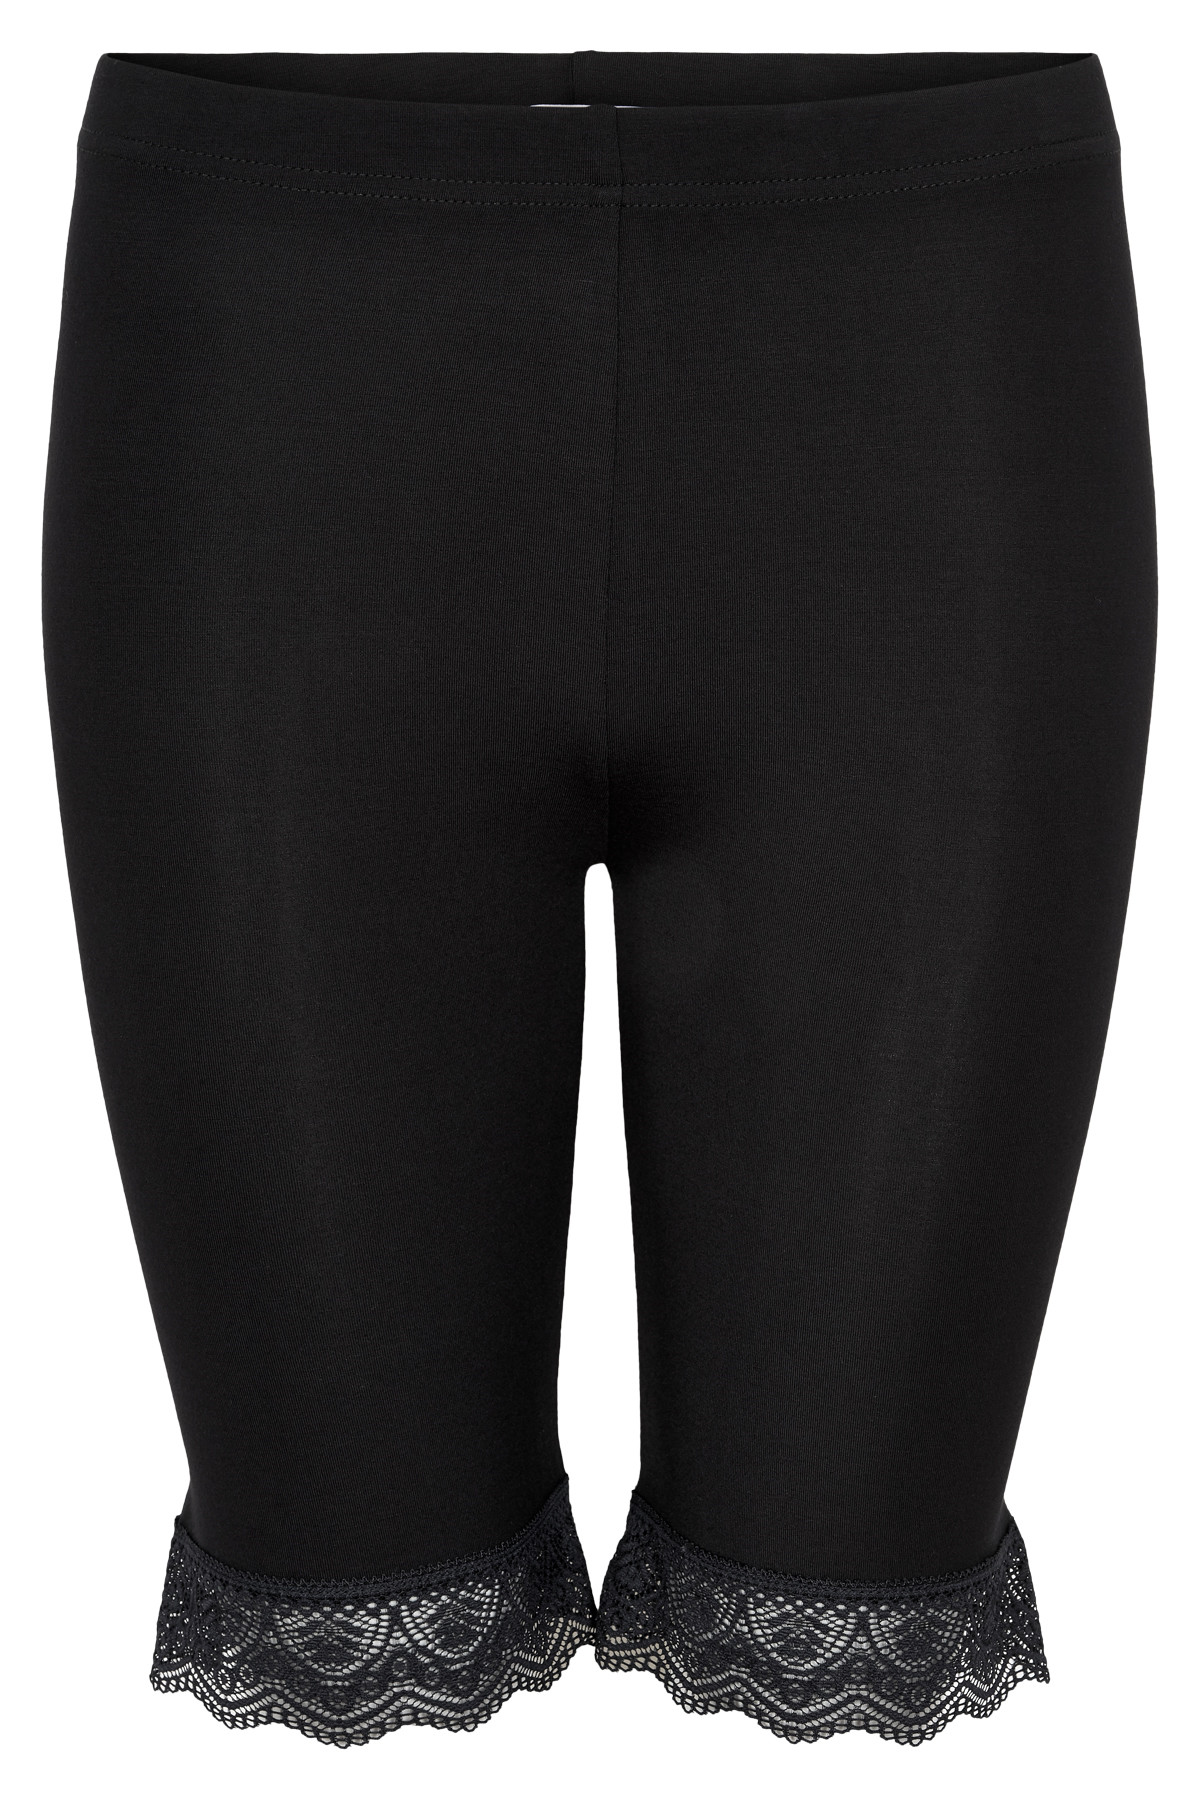 NOA NOA SHORT LEGGINGS 1-9845-2 00000 (Black, XXS)